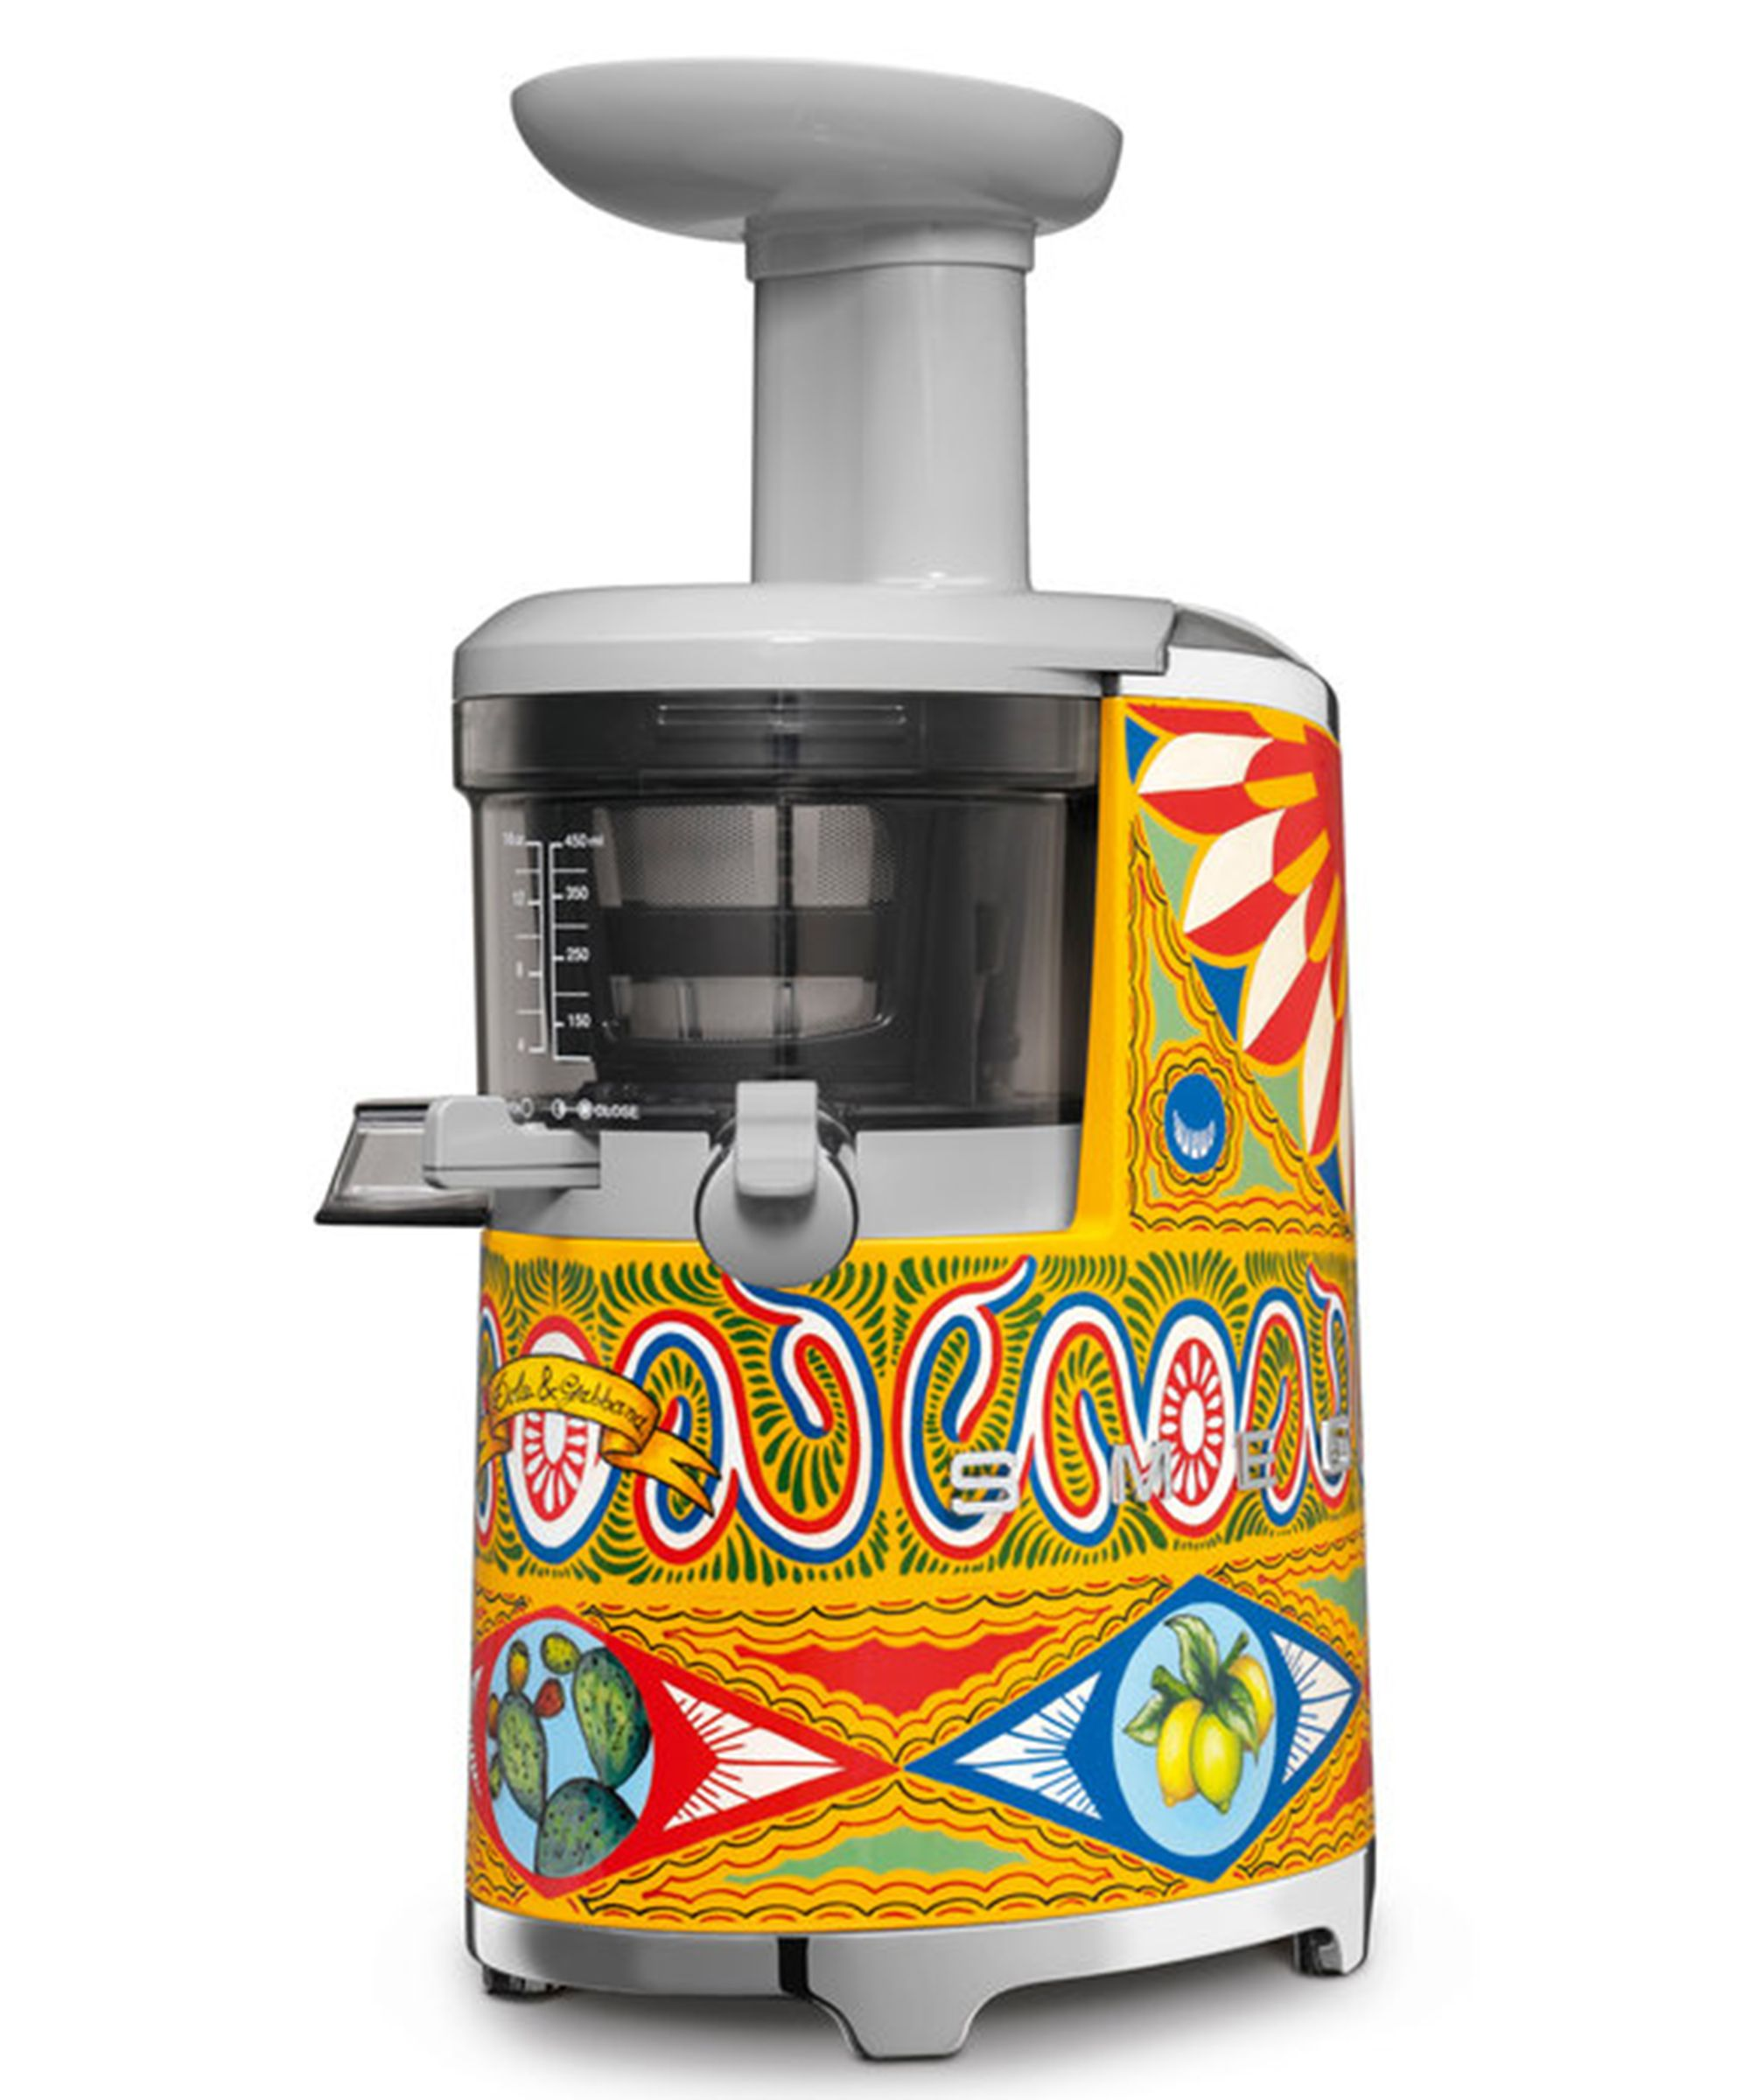 Smeg Kitchen Appliance slow Blender by Dolce & Gabbana